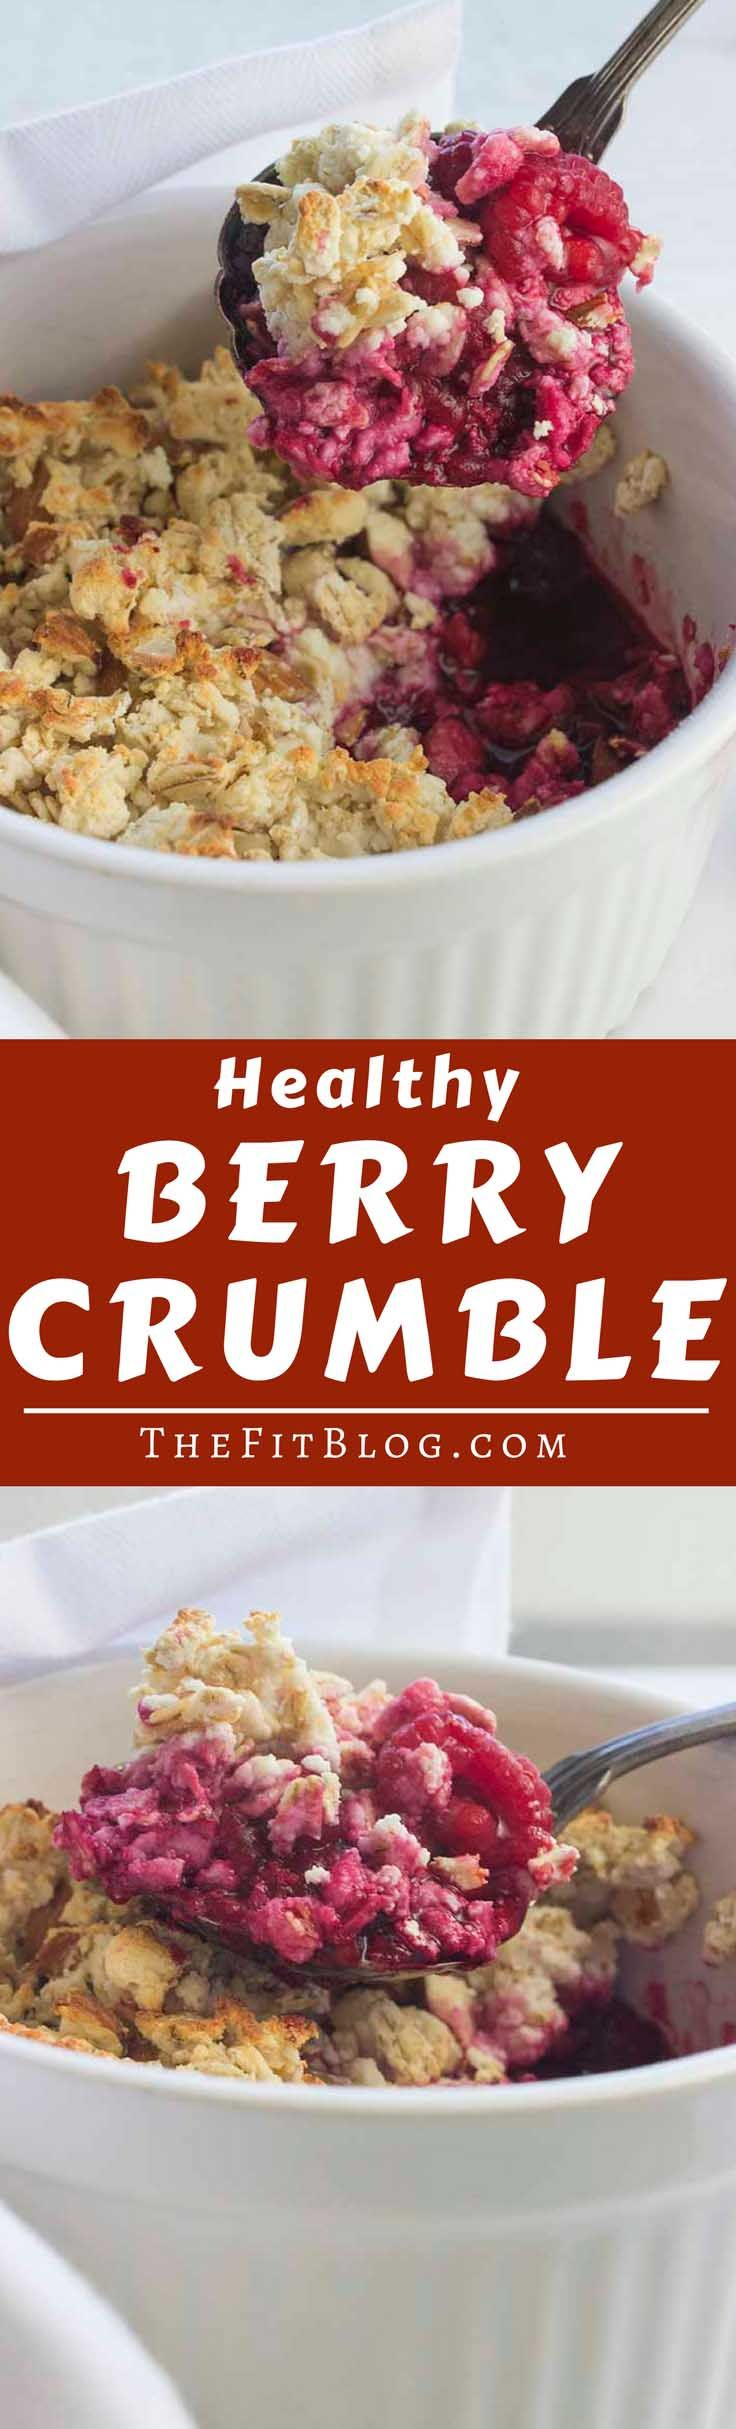 Who says you can't have cake for breakfast? This berry crumble looks and tastes like cake but it actually has the perfect macronutrients for a healthy breakfast or snack  | high protein | low carb | sugar free | gluten free | diabetes friendly |  via @TheFitBlog